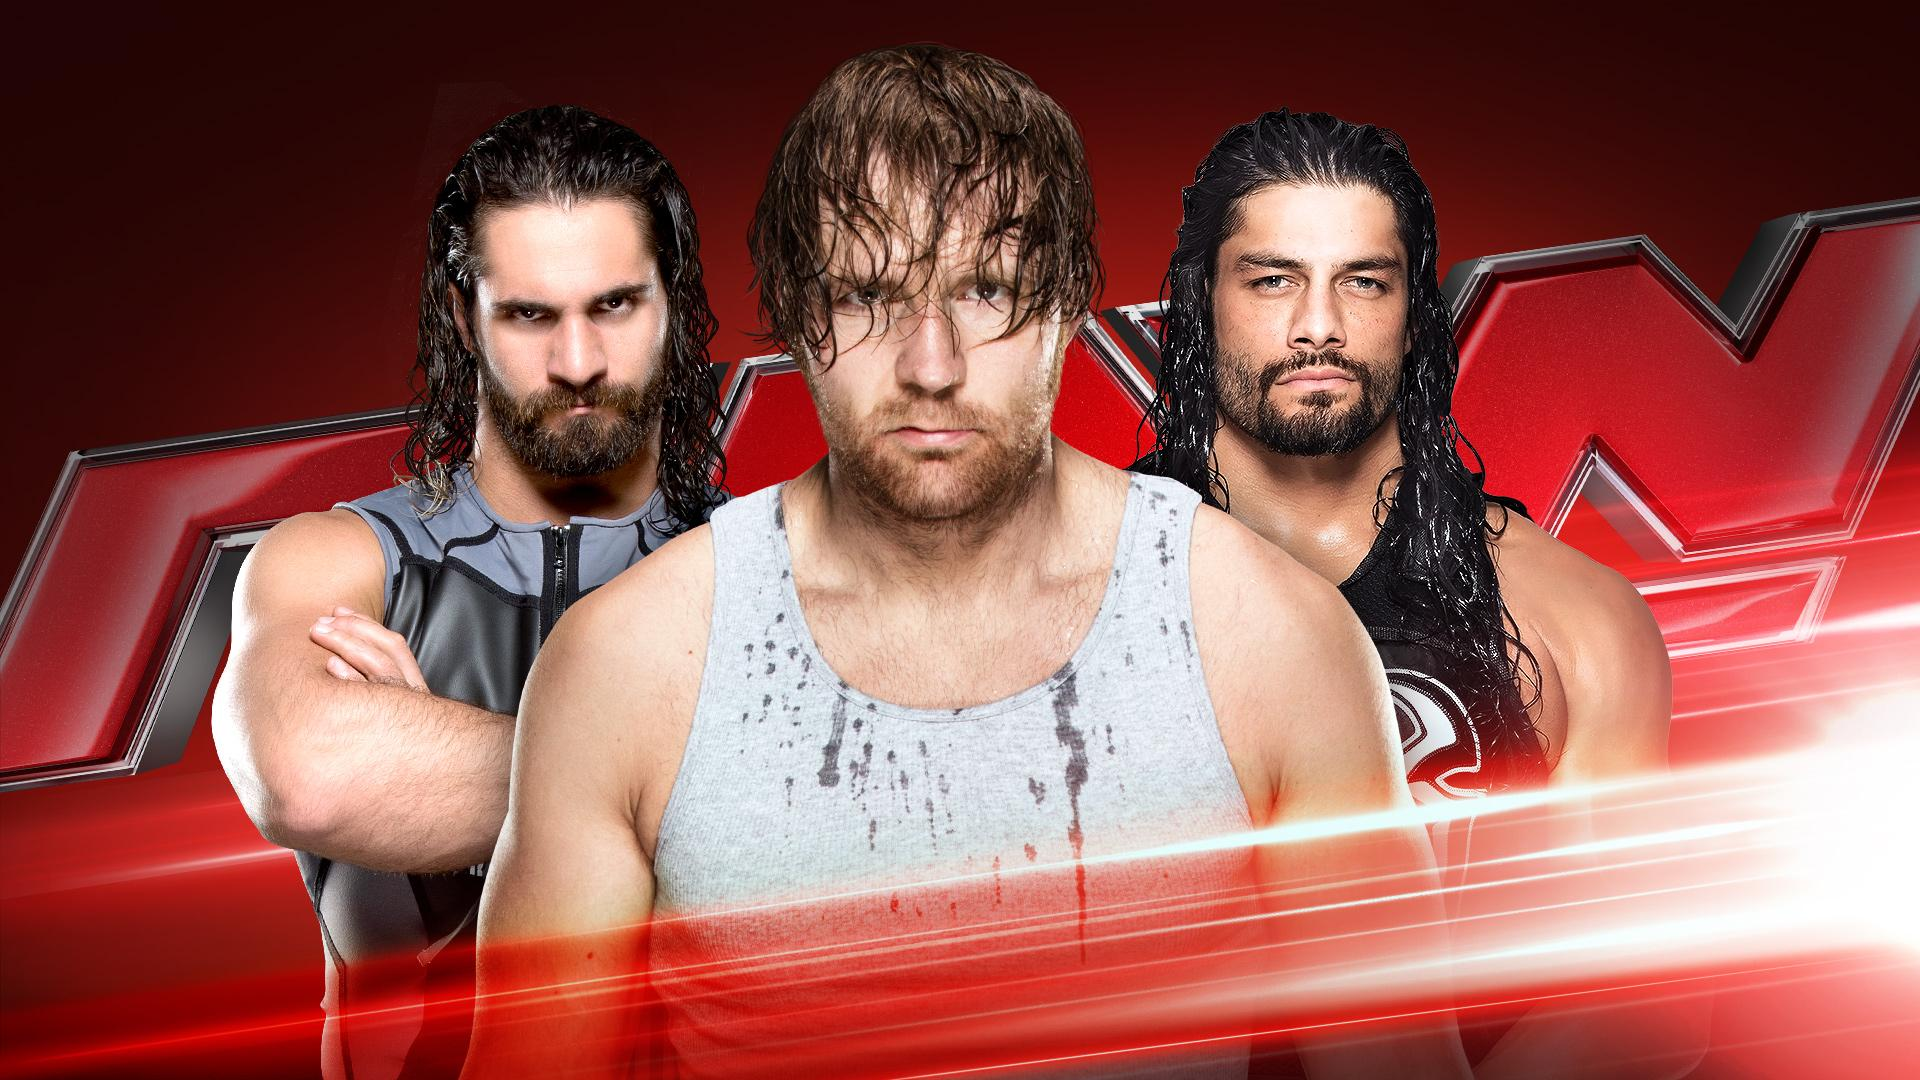 Wwe Monday Night Raw 13 06 2016